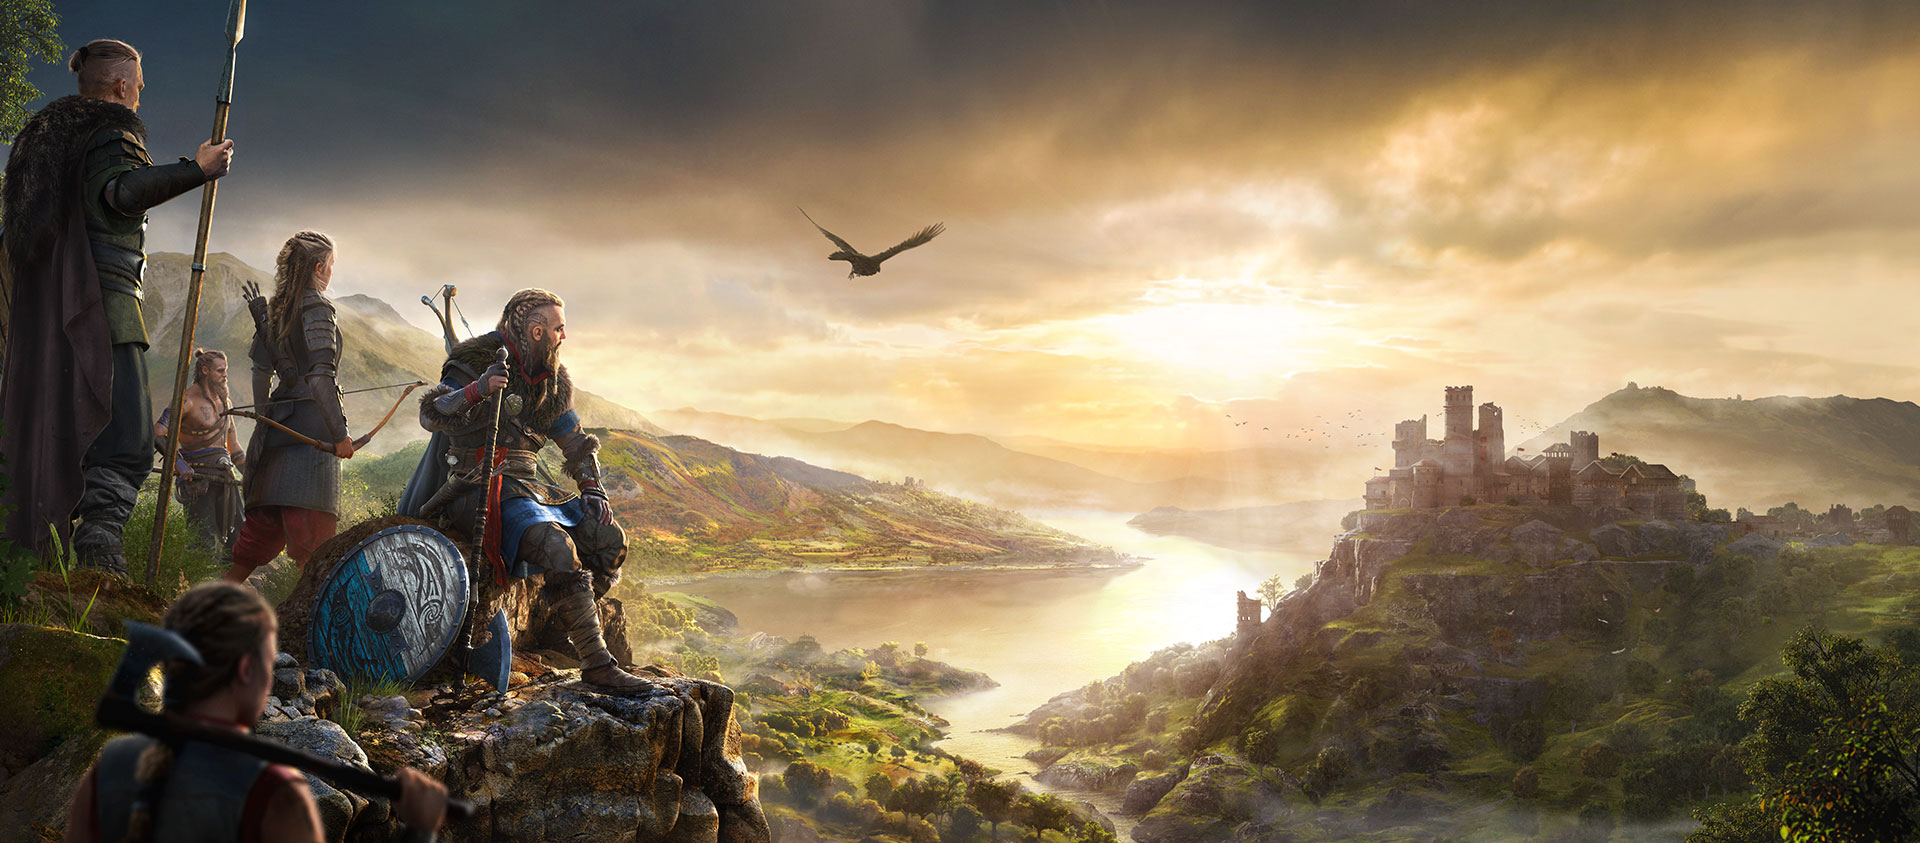 Legendary Viking raider Eivor looks out across a beautiful vista, composed of a winding river, distant castle, and village below. His clan stands behind him, weapons at the ready.